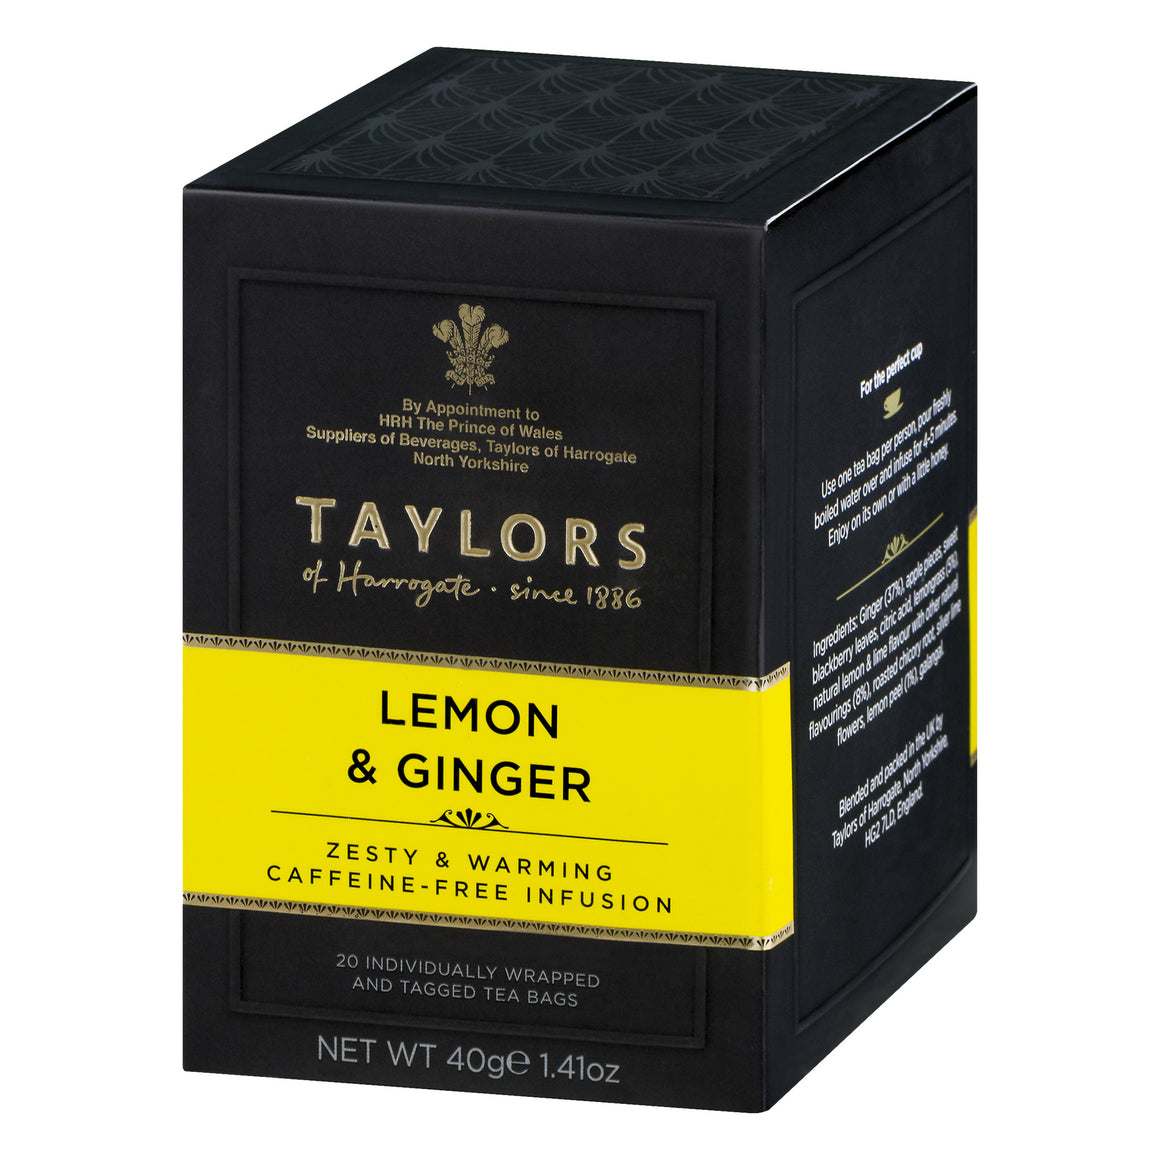 Taylors of Harrogate Lemon & Ginger